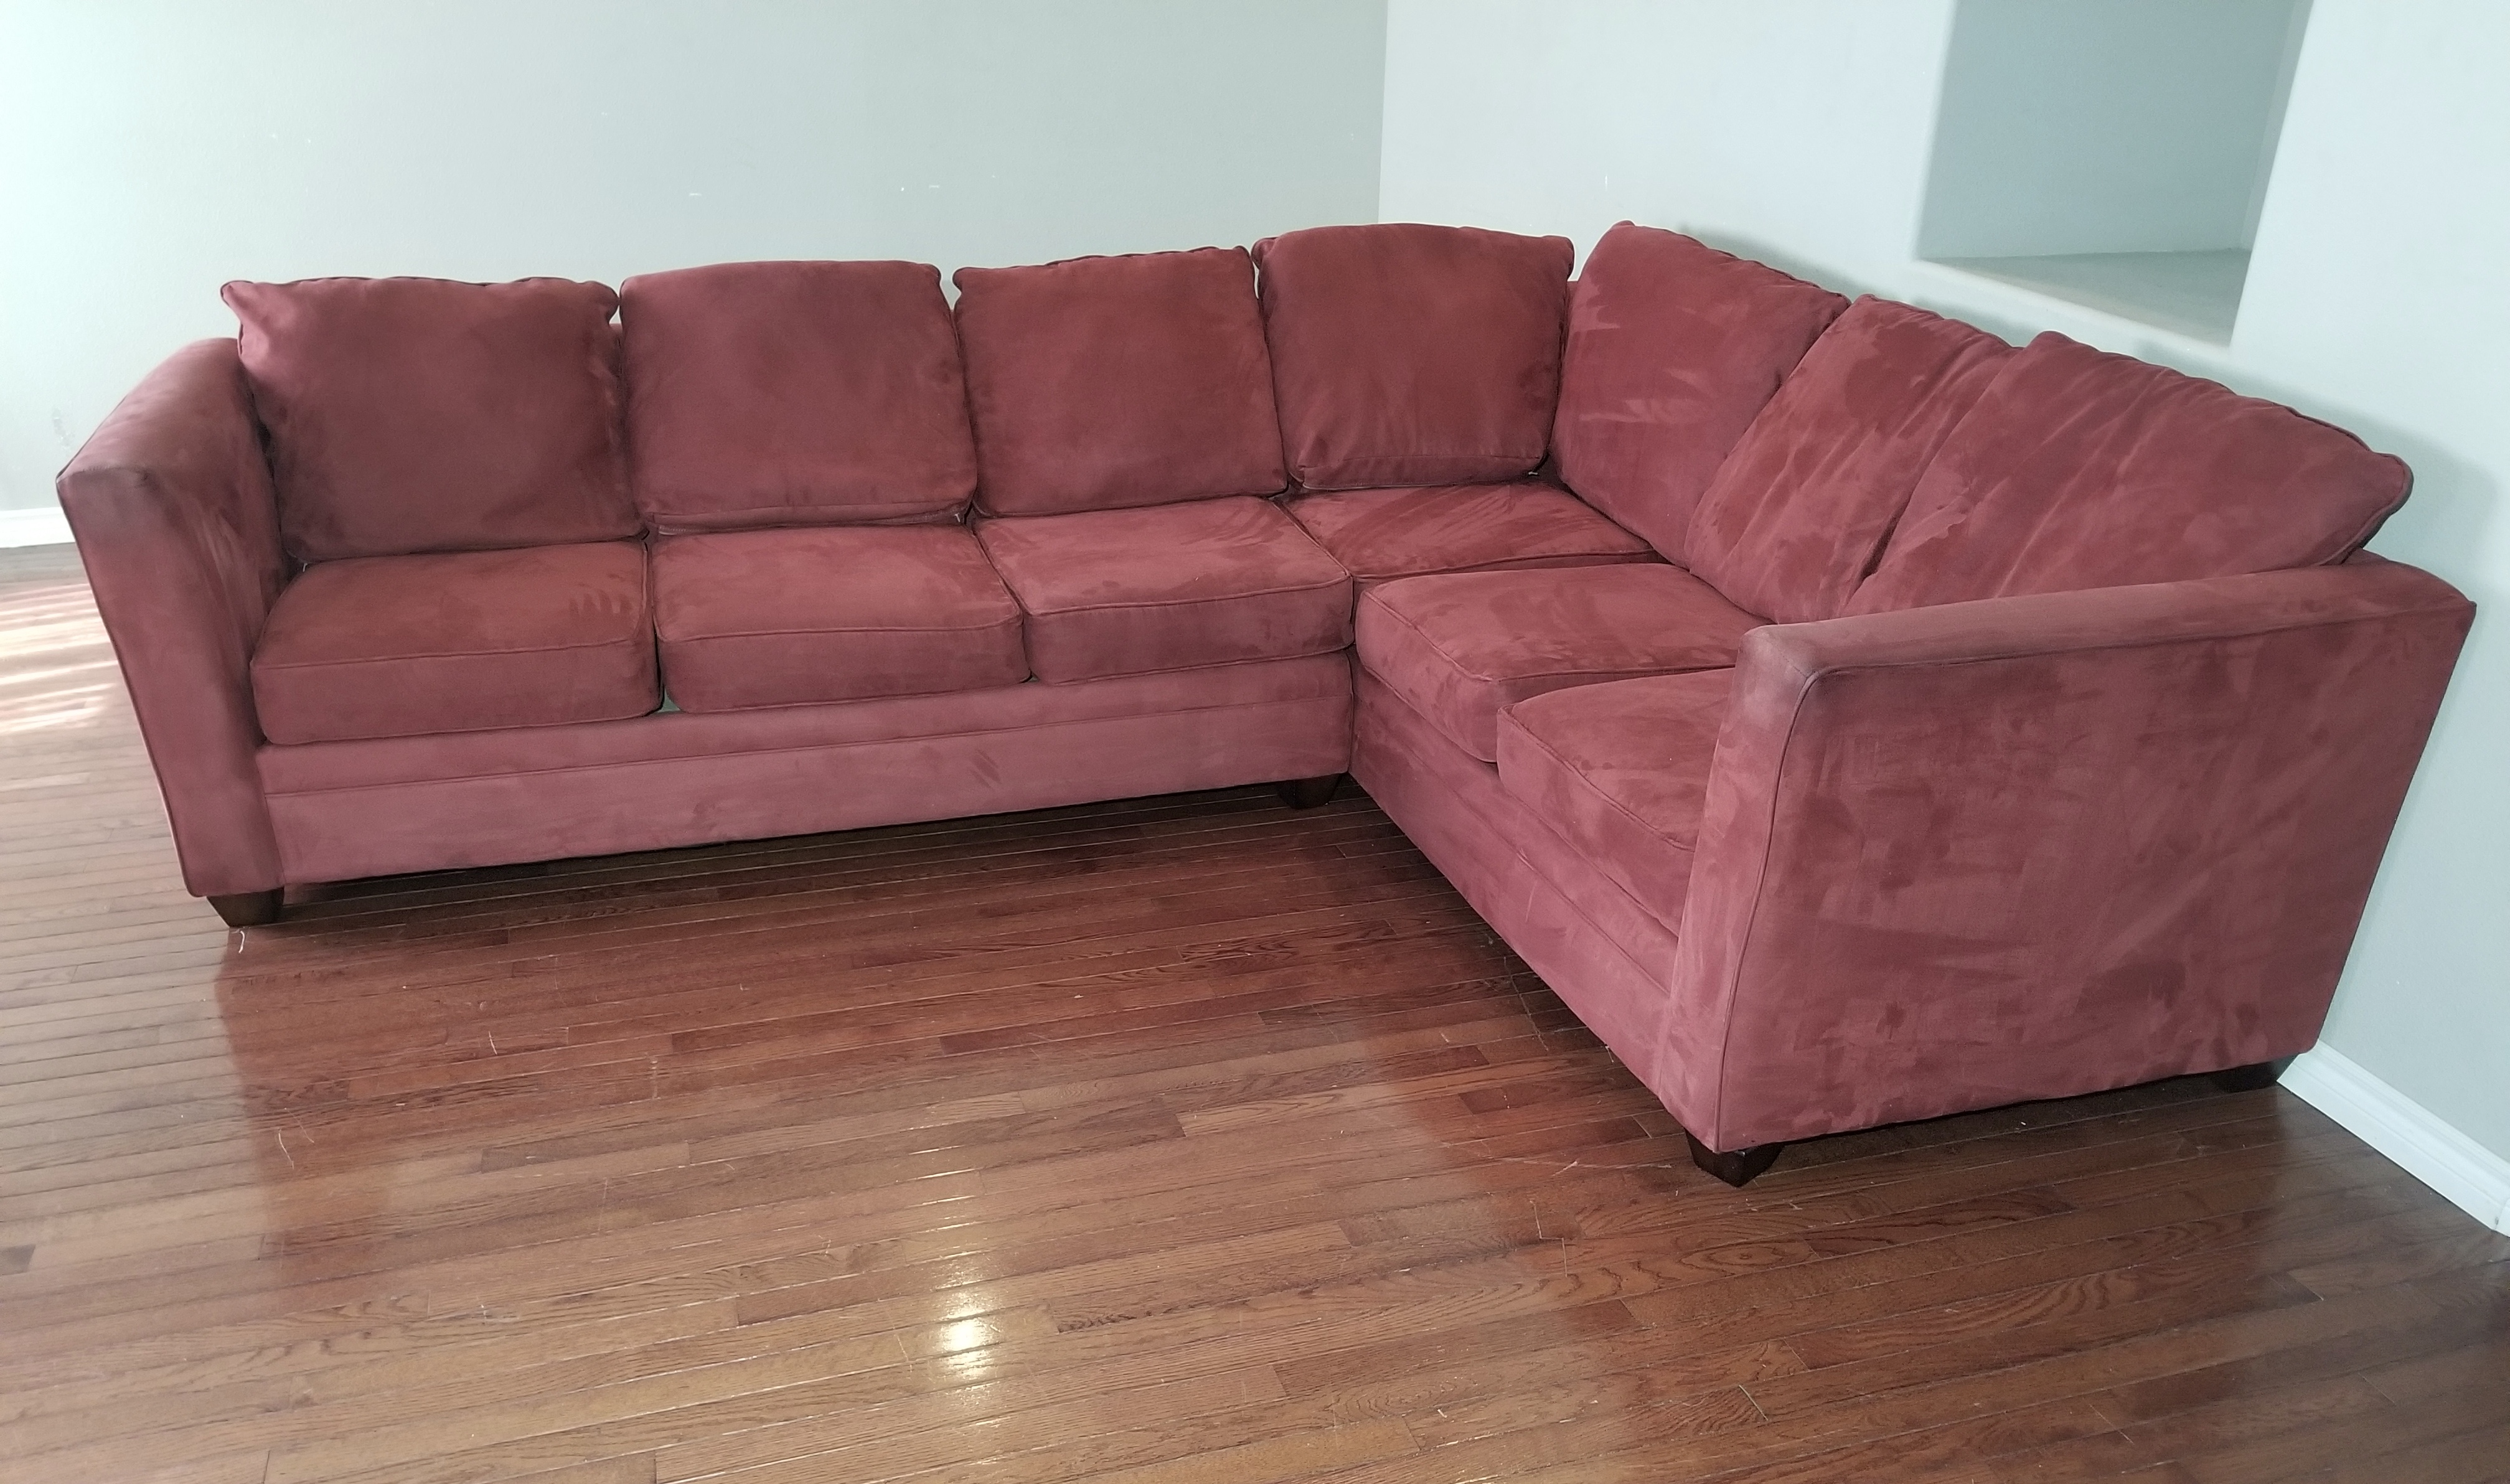 Furniture ReHome